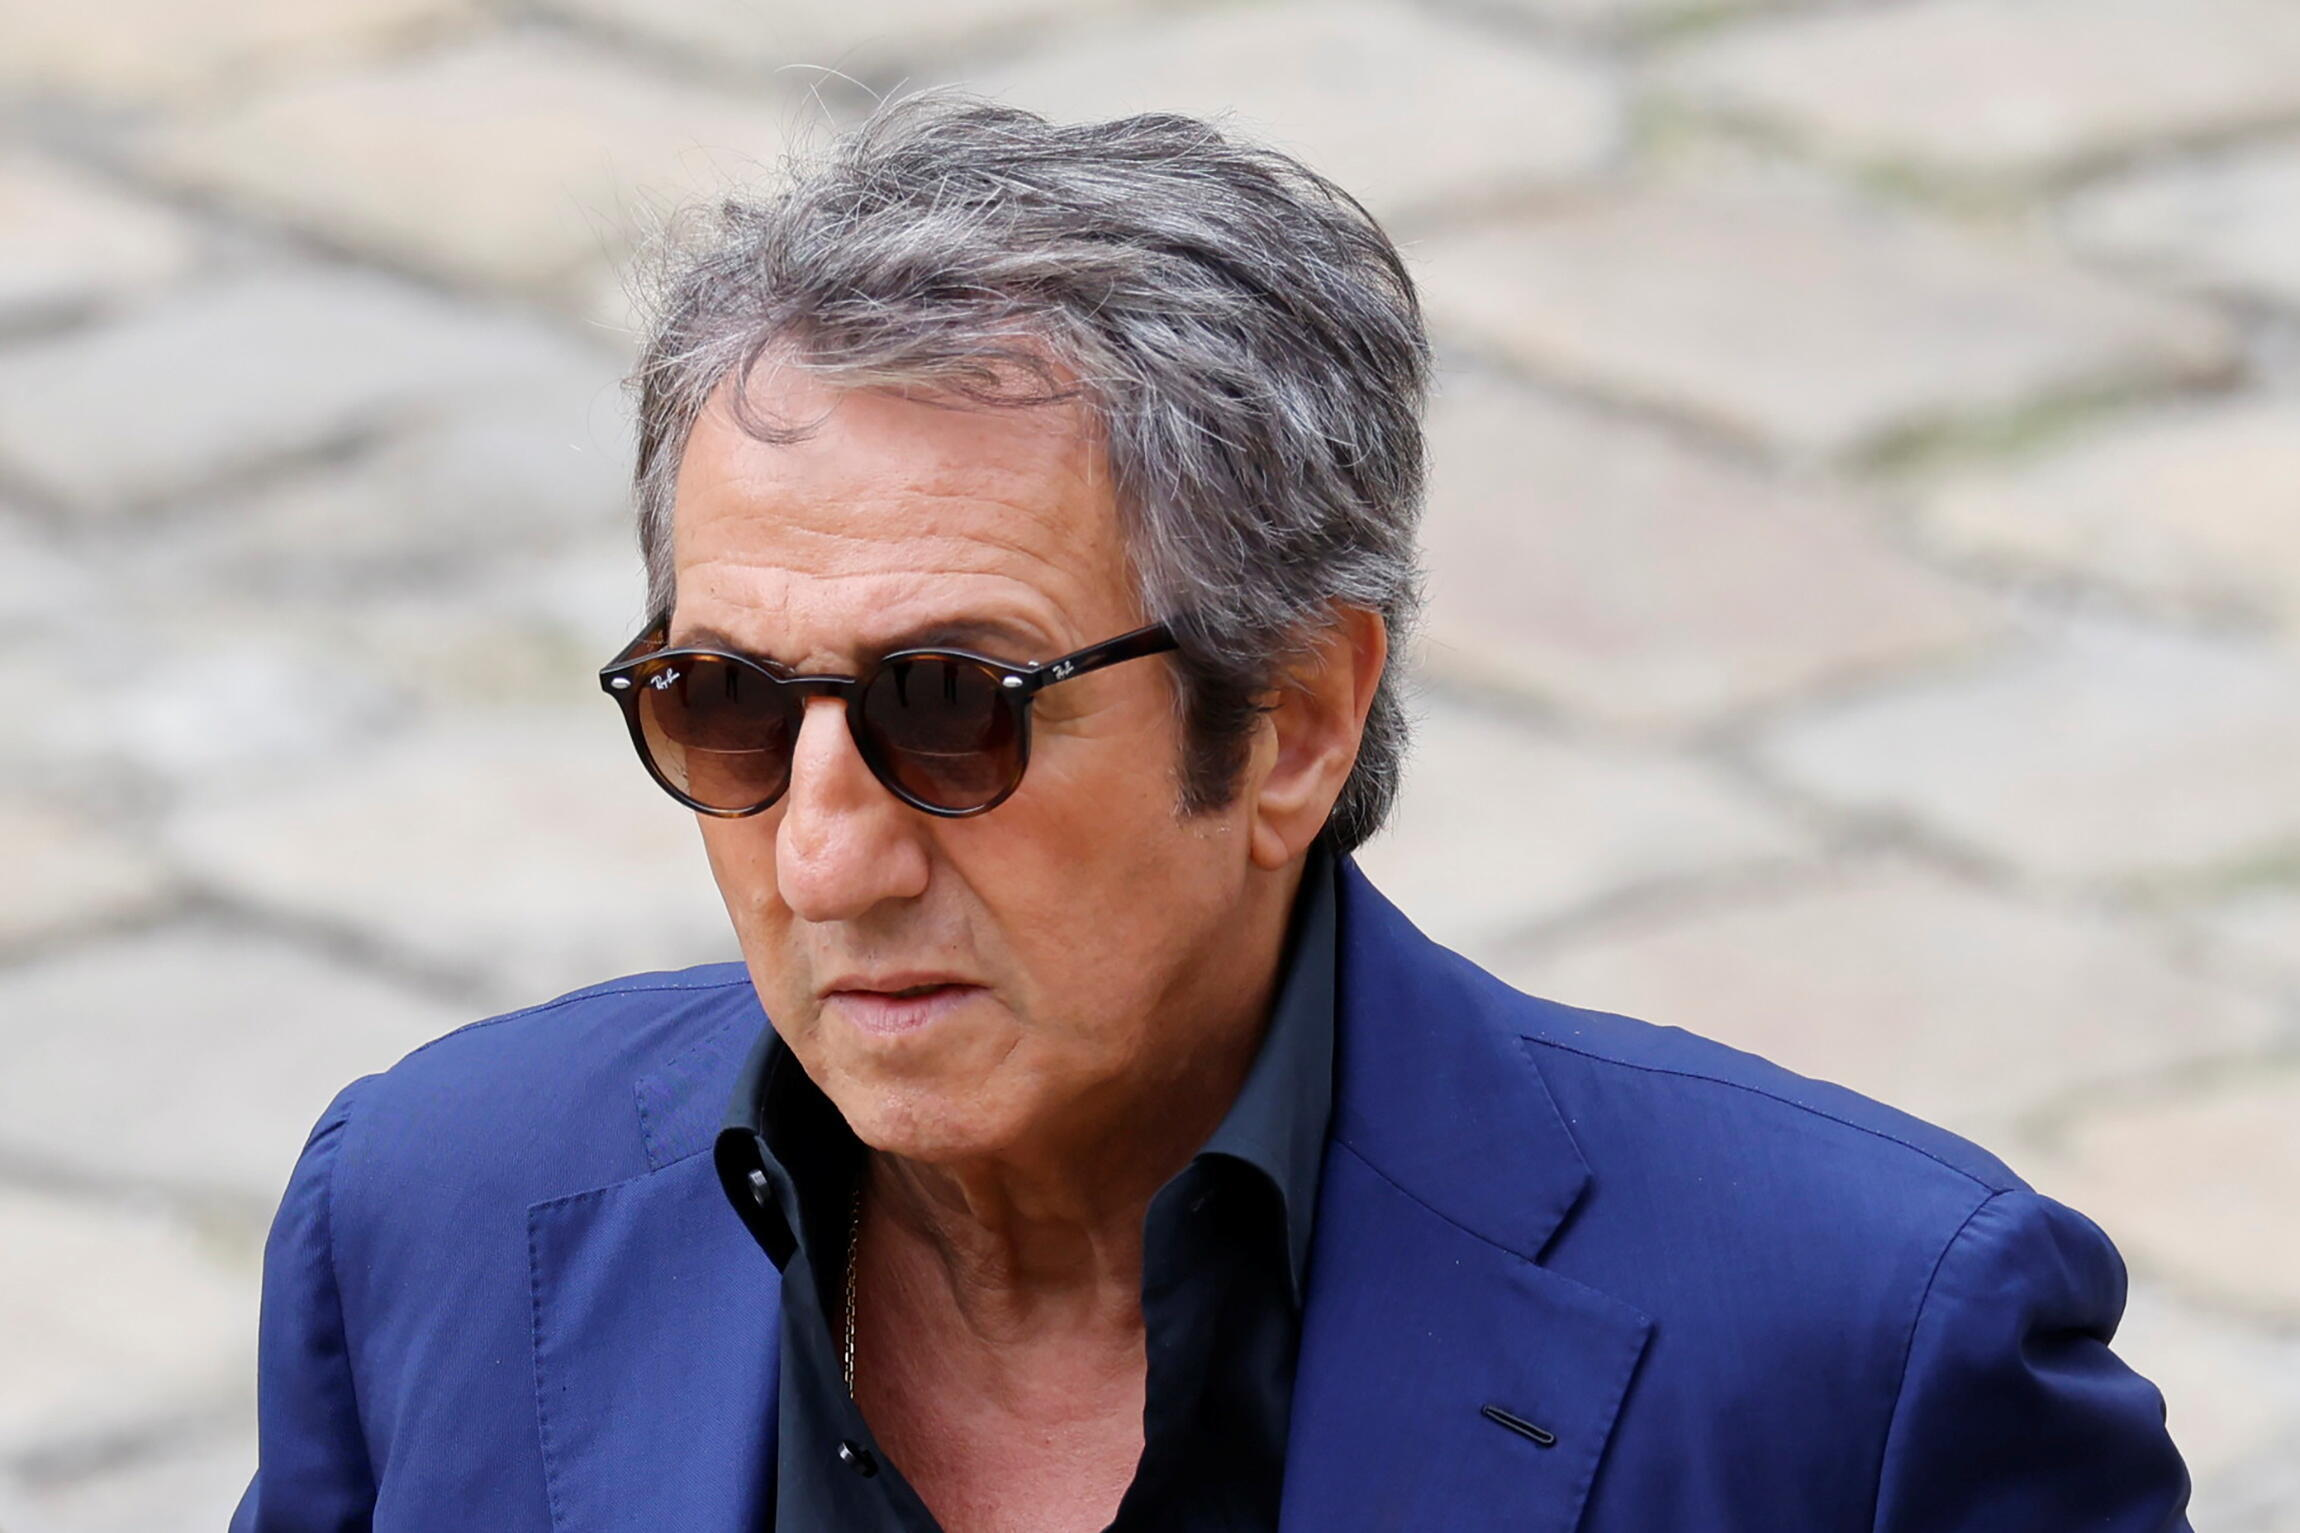 Richard Anconina arrives to attend a national tribute to the late actor Jean-Paul Belmondo during a ceremony at the Hotel des Invalides in Paris, France, September 9, 2021.